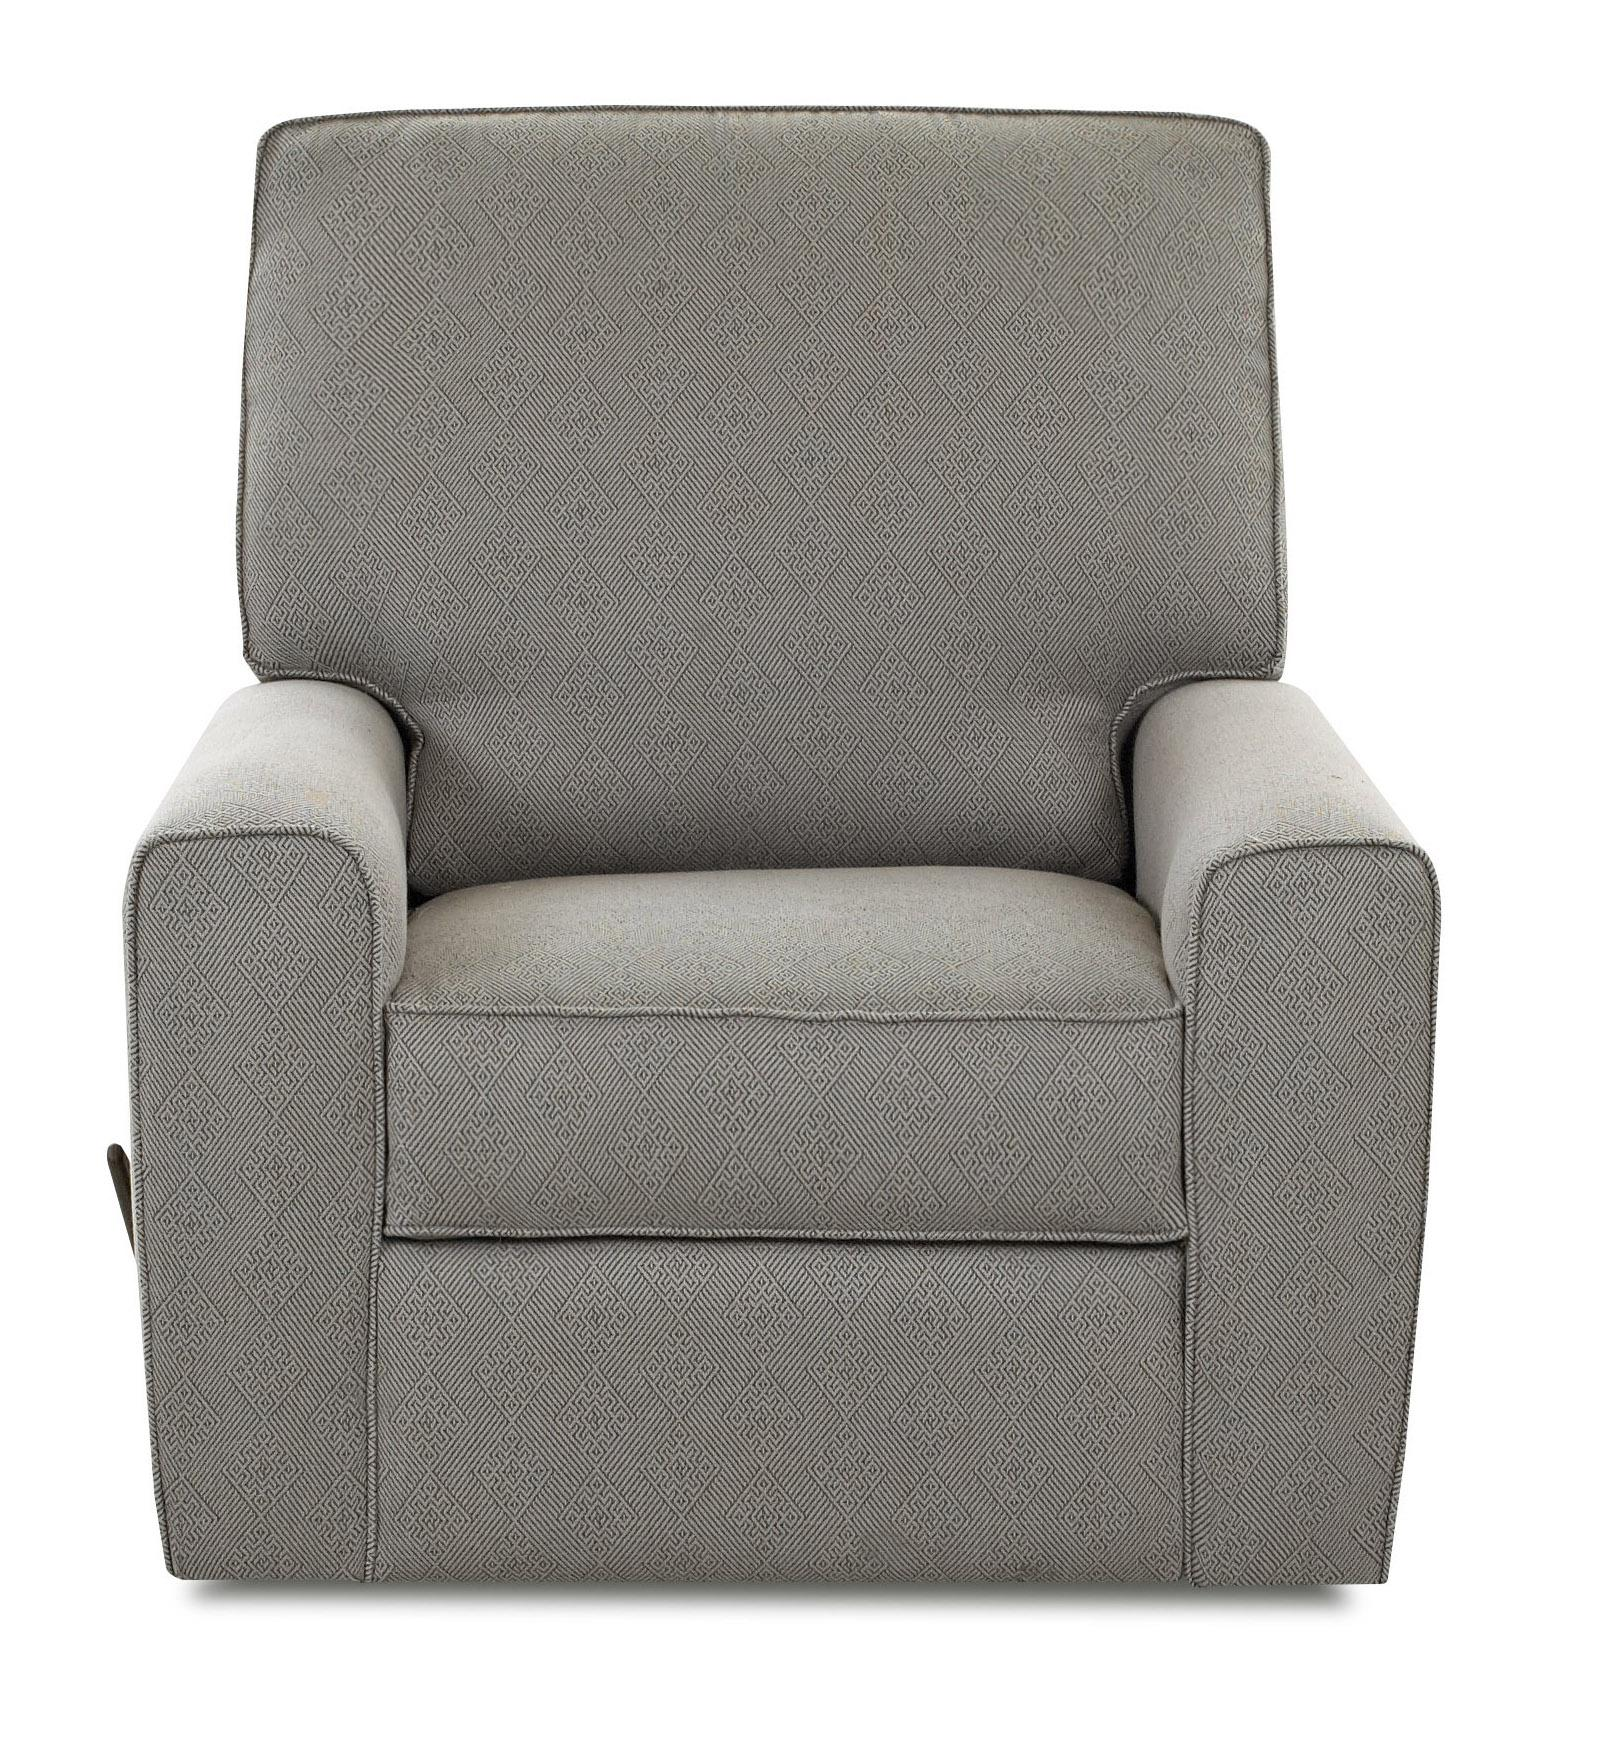 Klaussner Hannah Transitional Reclining Chair - Item Number: 74203H RC